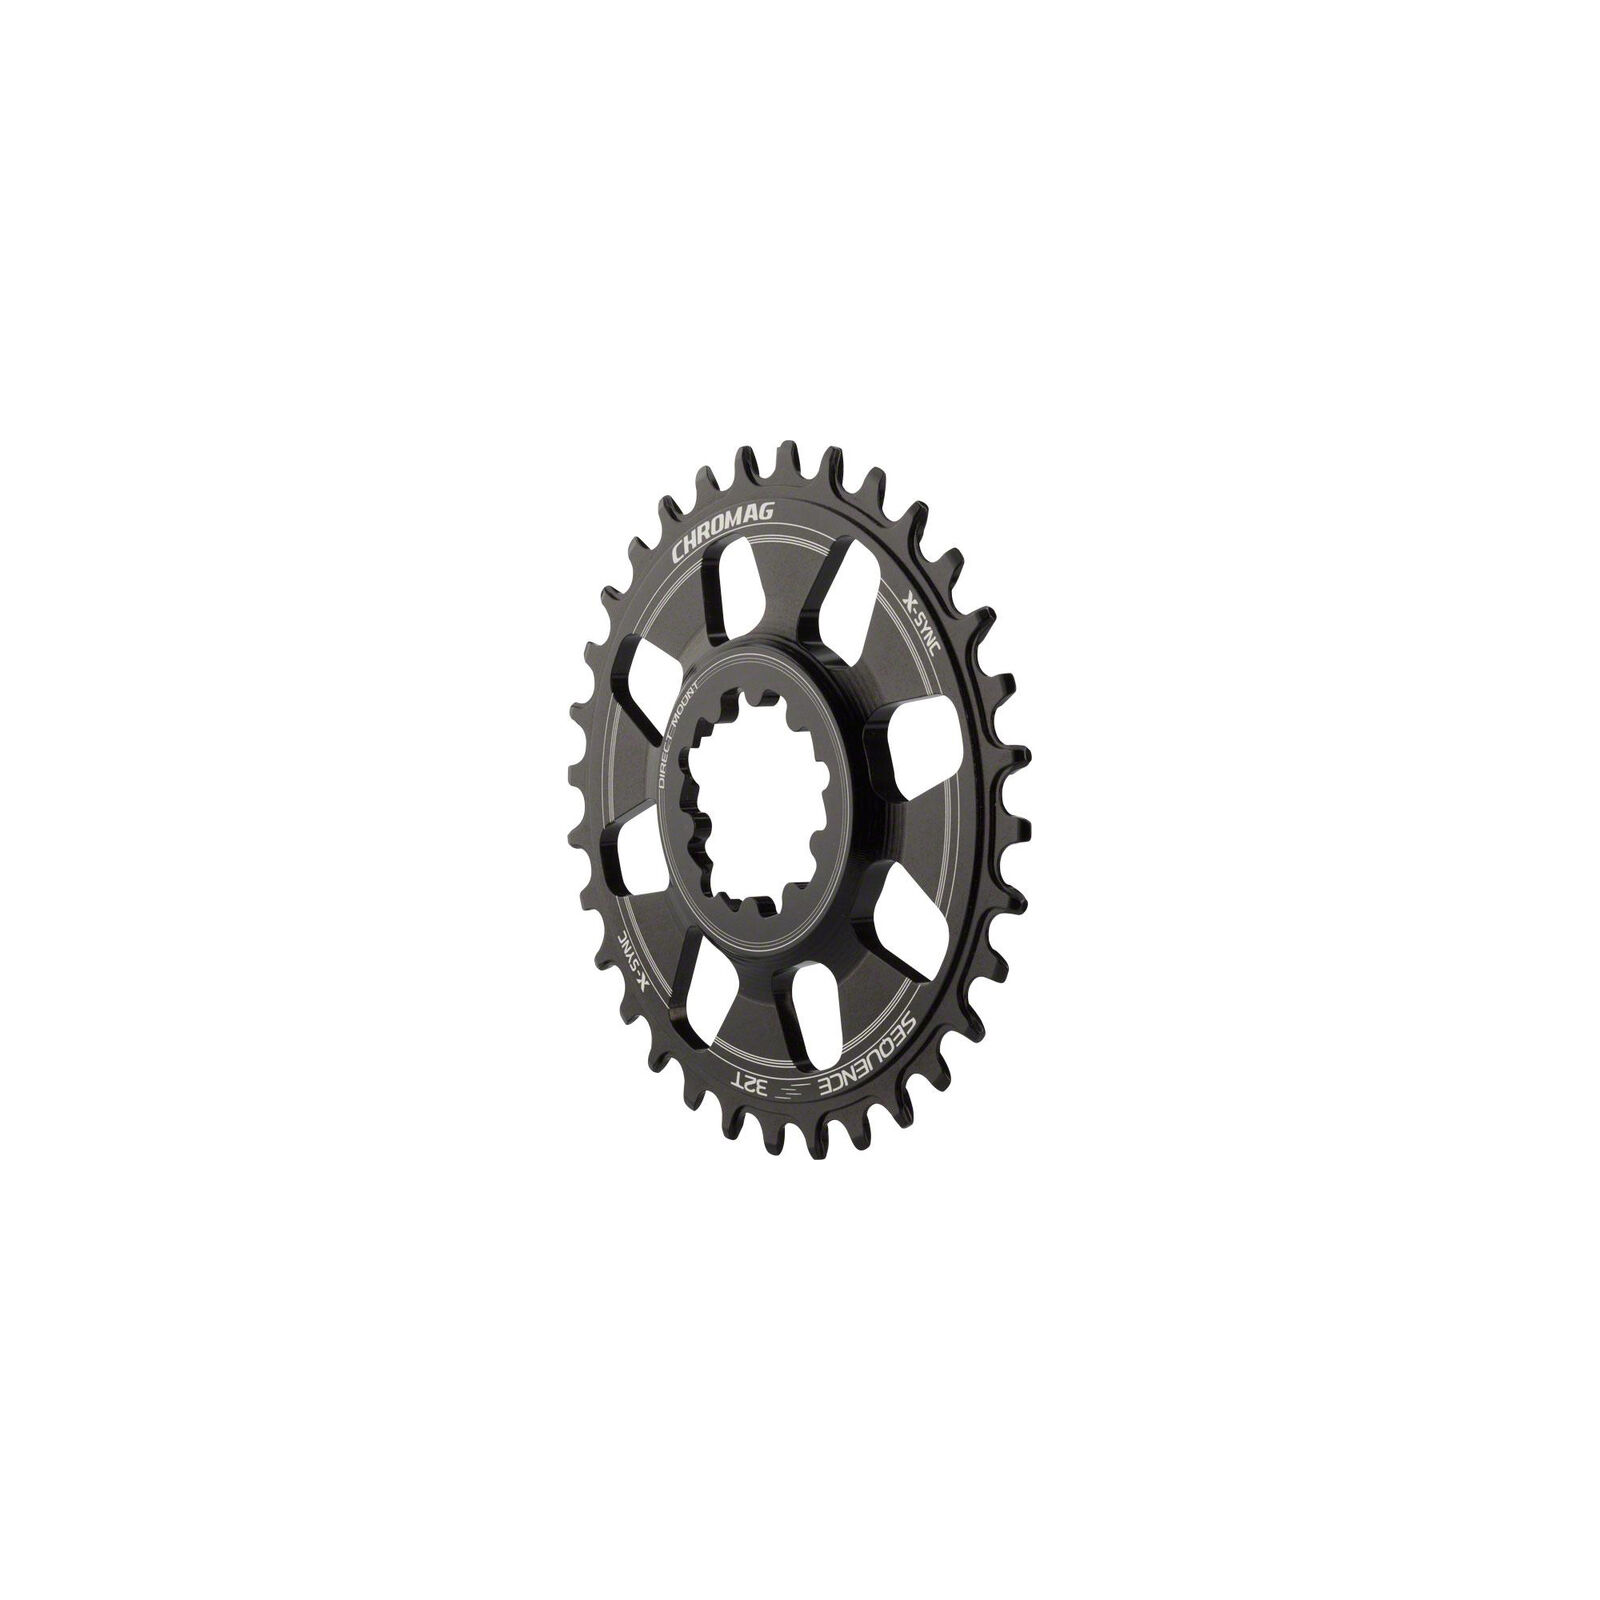 Chromag Sequence X-Sync Direct Mount Chainring: 32T, SRAM GXP